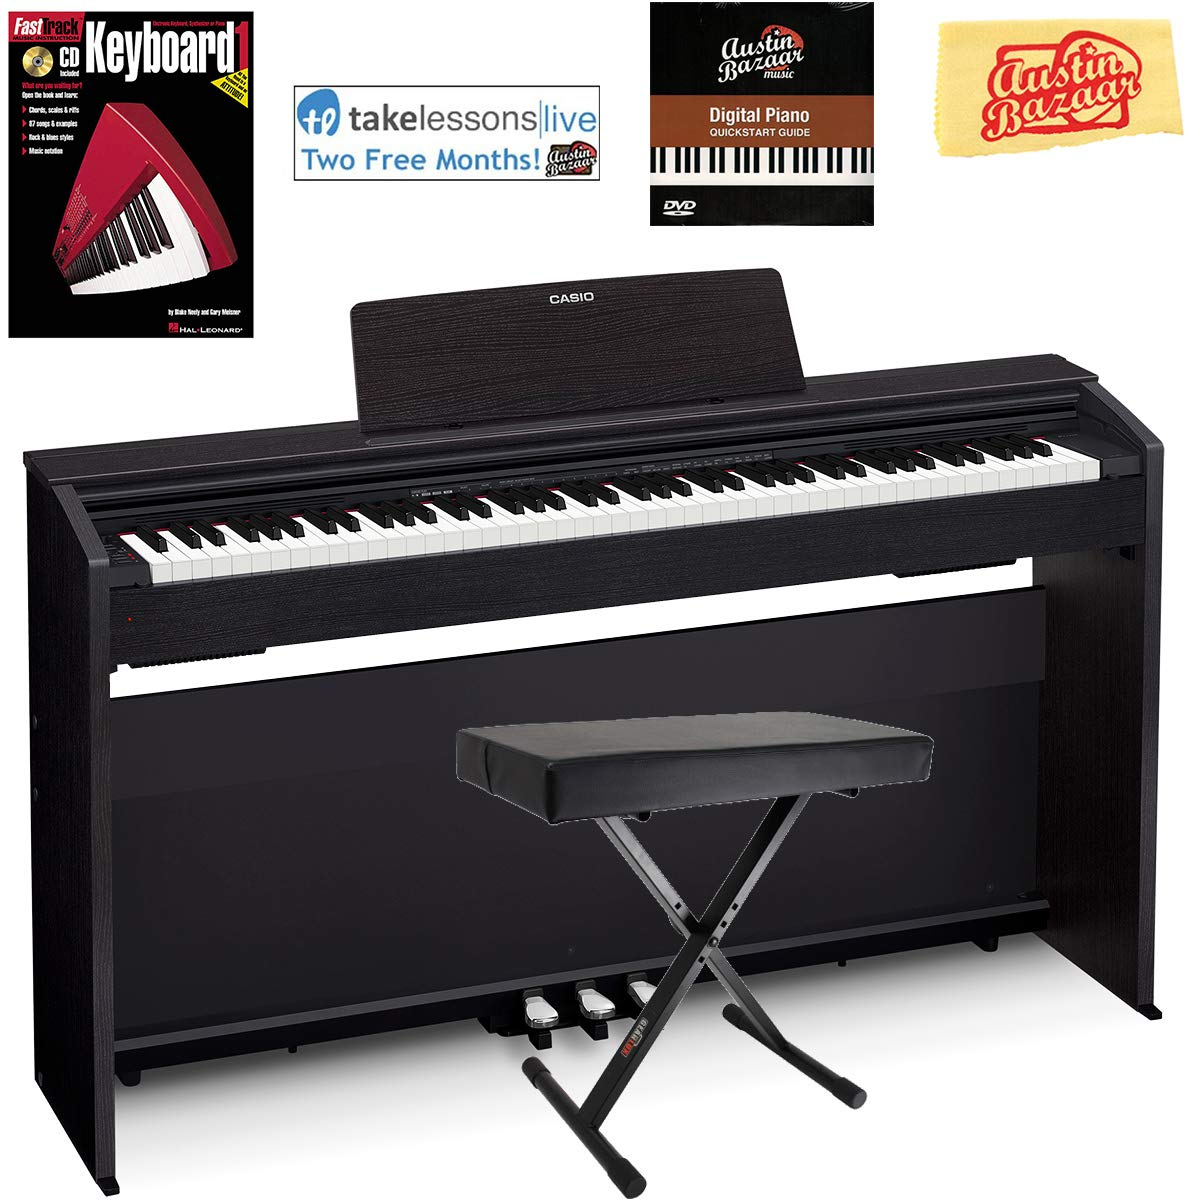 Casio Privia PX-870 Digital Piano - Black Bundle with Adjustable Bench, Instructional Book, Online Lessons, Austin Bazaar Instructional DVD, and Polishing Cloth by Casio